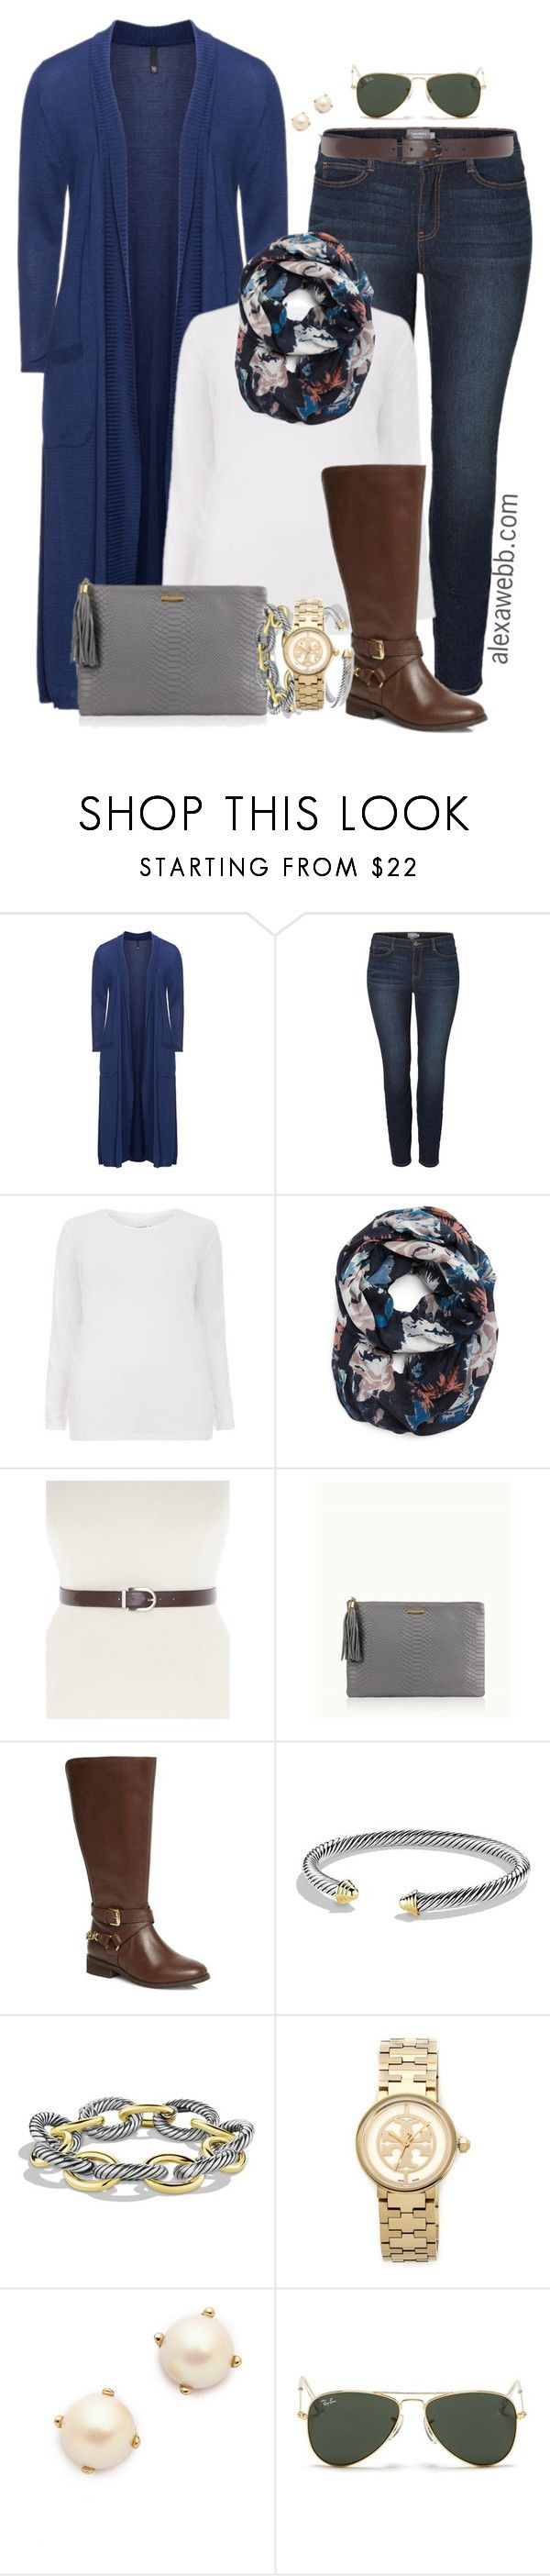 Plus Size Fashion - Casual Wear by alexawebb on Polyvore #alexawebb